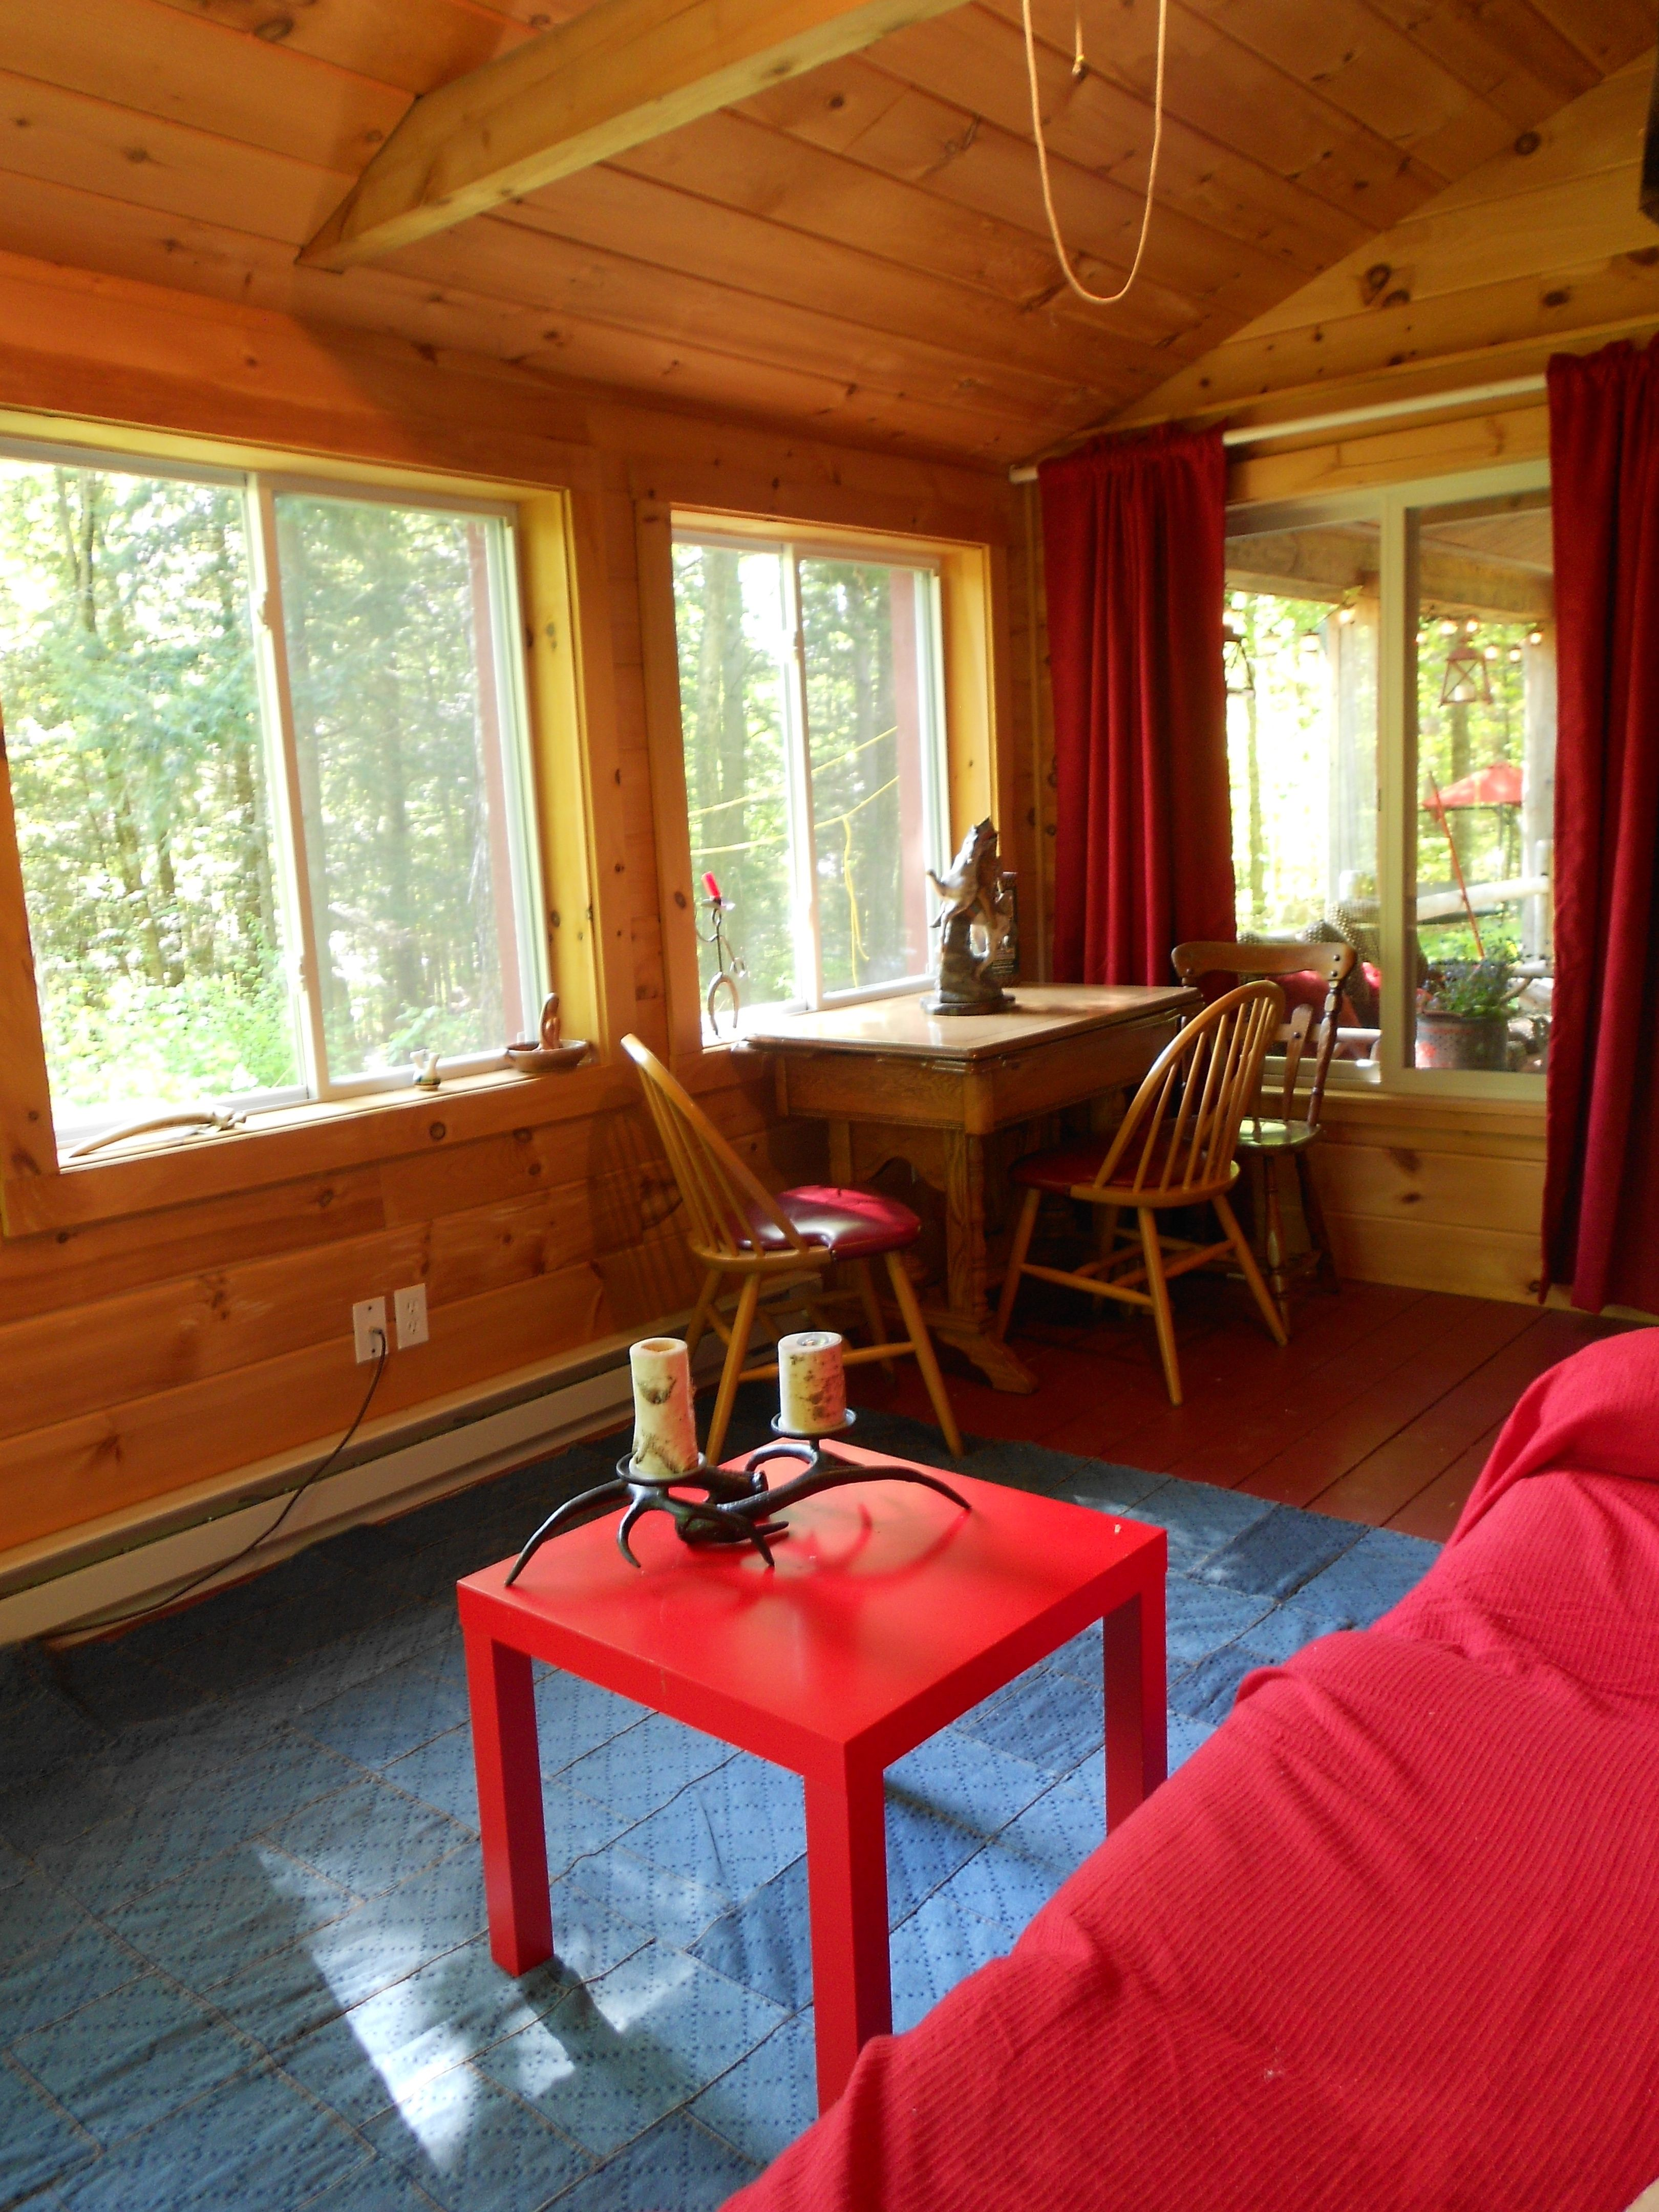 river luxury vacation waterfront com sale cabins rental watch maine sunday rustic visitsundayriver